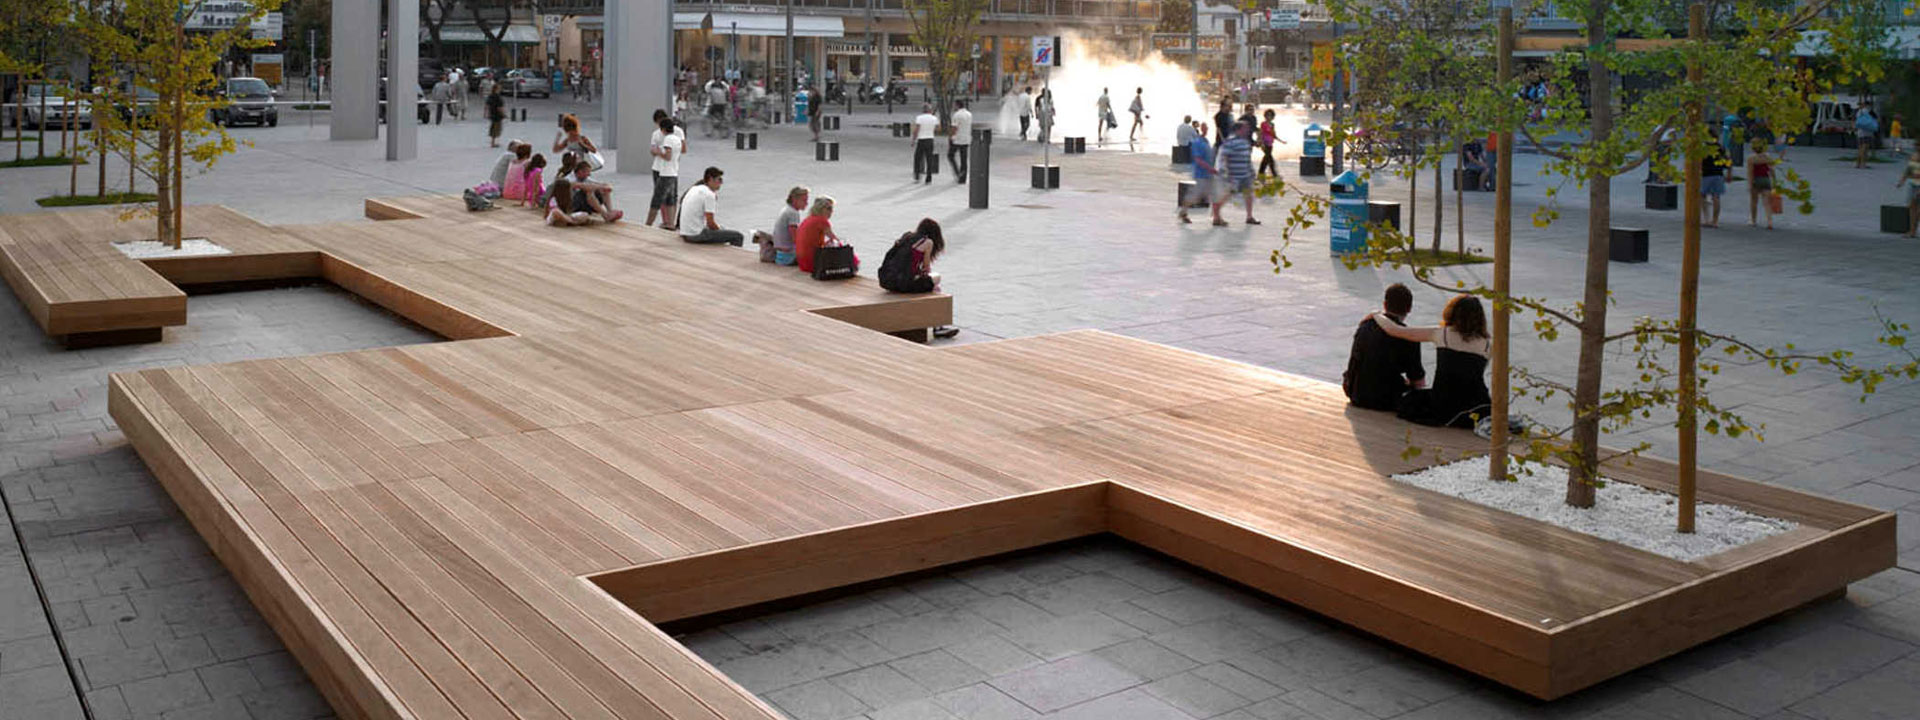 How Urban Spaces Are Transforming And The Role Of Street Furniture Street Furniture Direct News